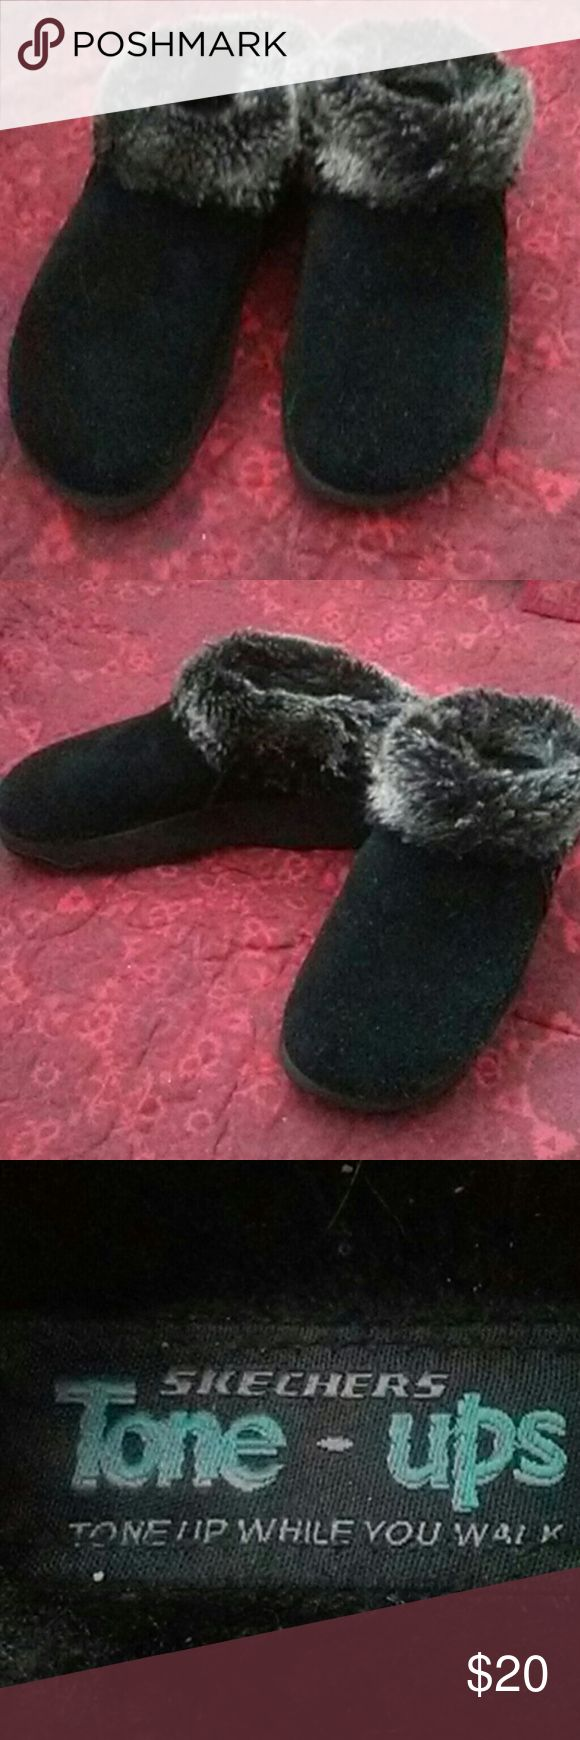 Slippers Black fur-lined slippers Skechers Shoes Slippers